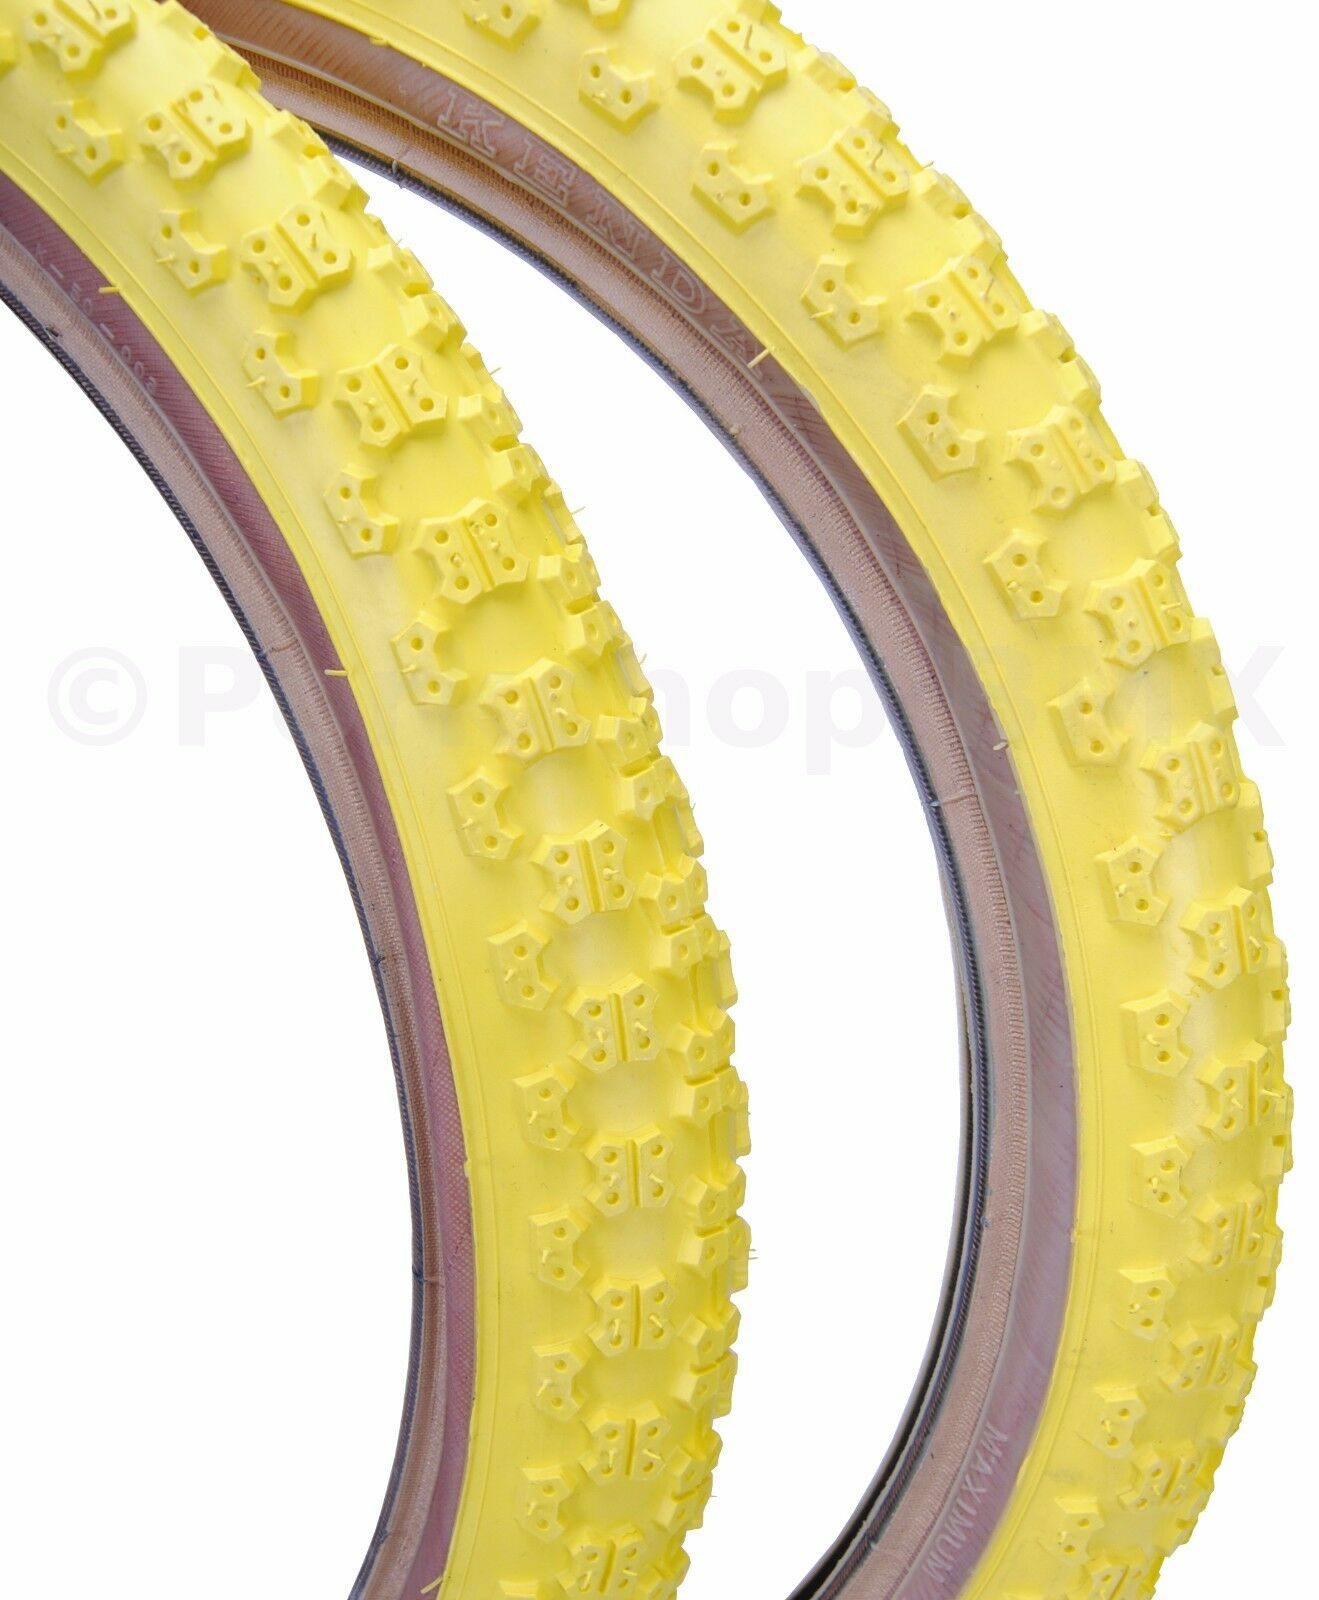 Kenda Comp 3 III old school BMX skinwall gumwall tires 20  X 1.75  YELLOW (PAIR)